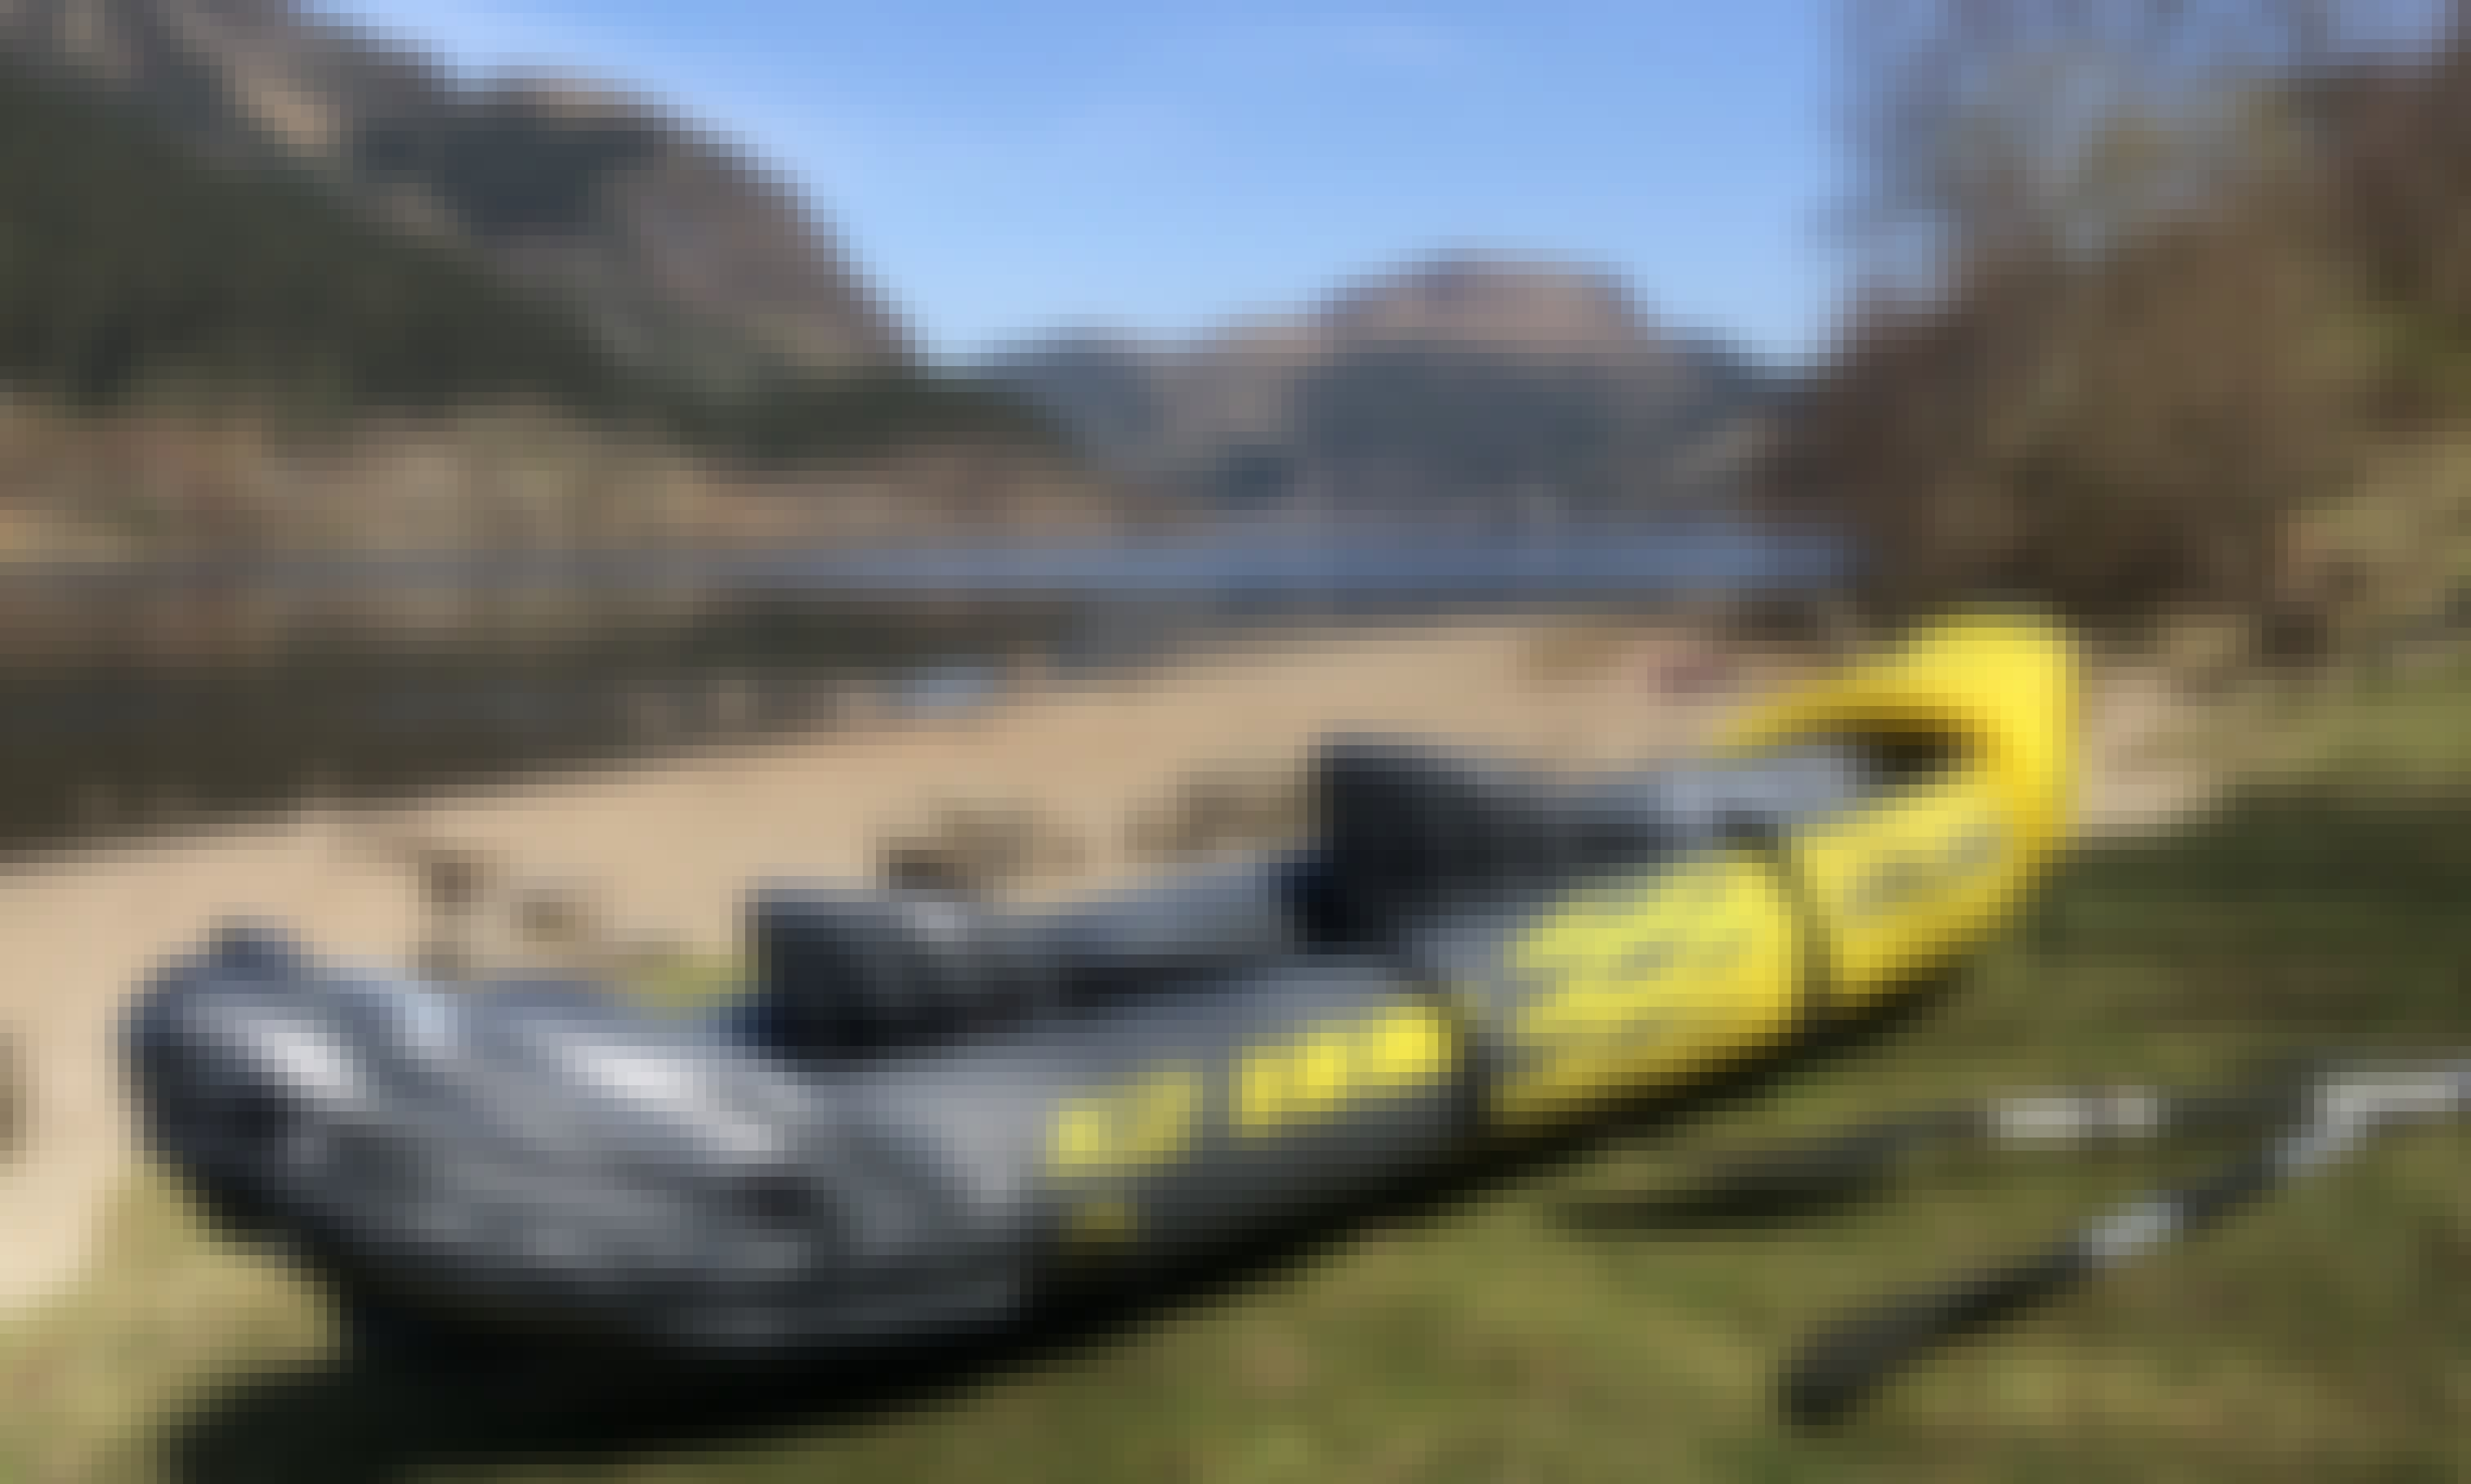 Kayak & Motorhome for Hire